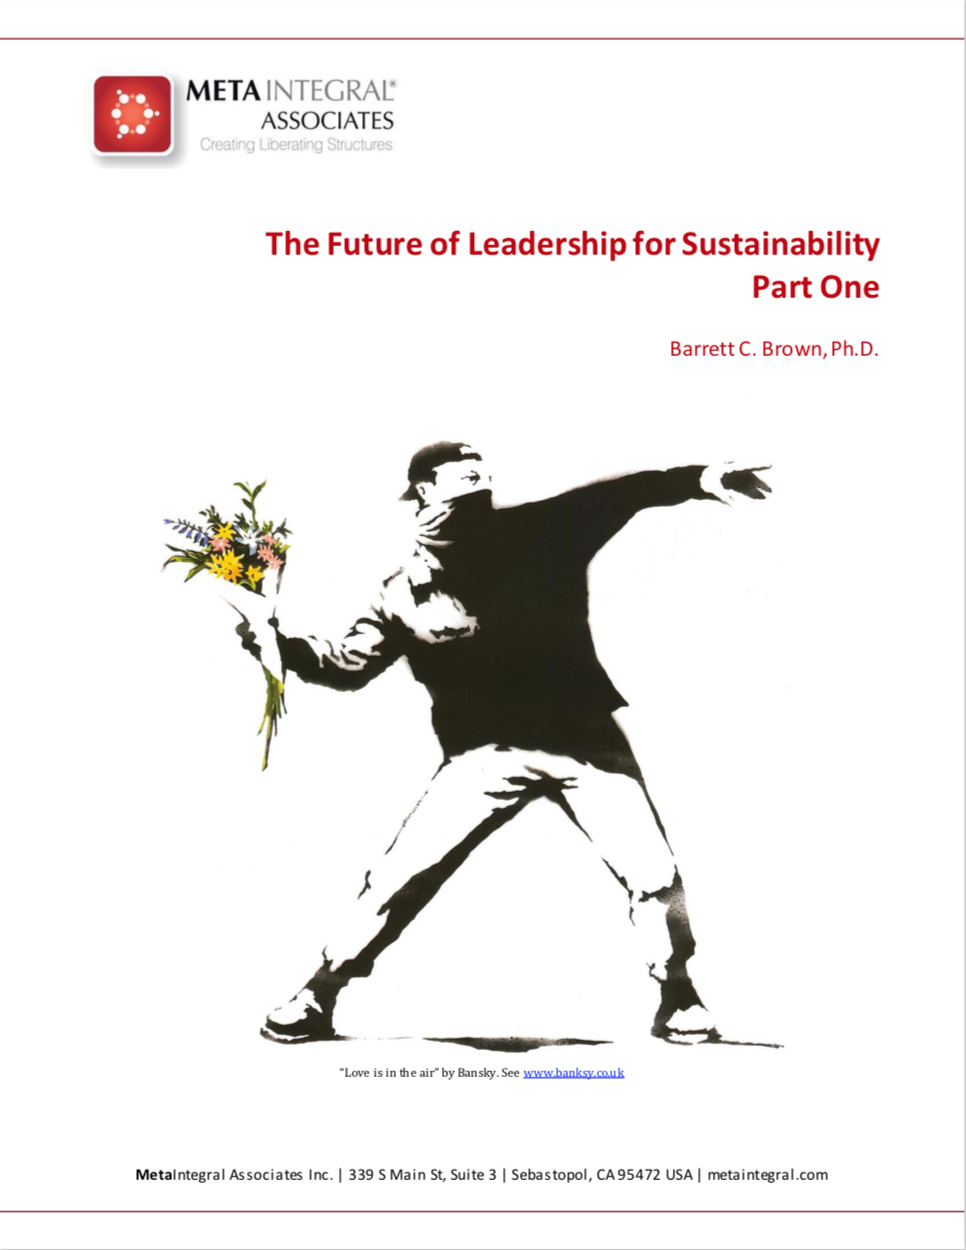 The future of leadership for sustainability - Part 1 - Originally published in Kosmos Journal, this two-part article goes deep into who we are being challenged to become in order to create a sustainable and just world that works for all.